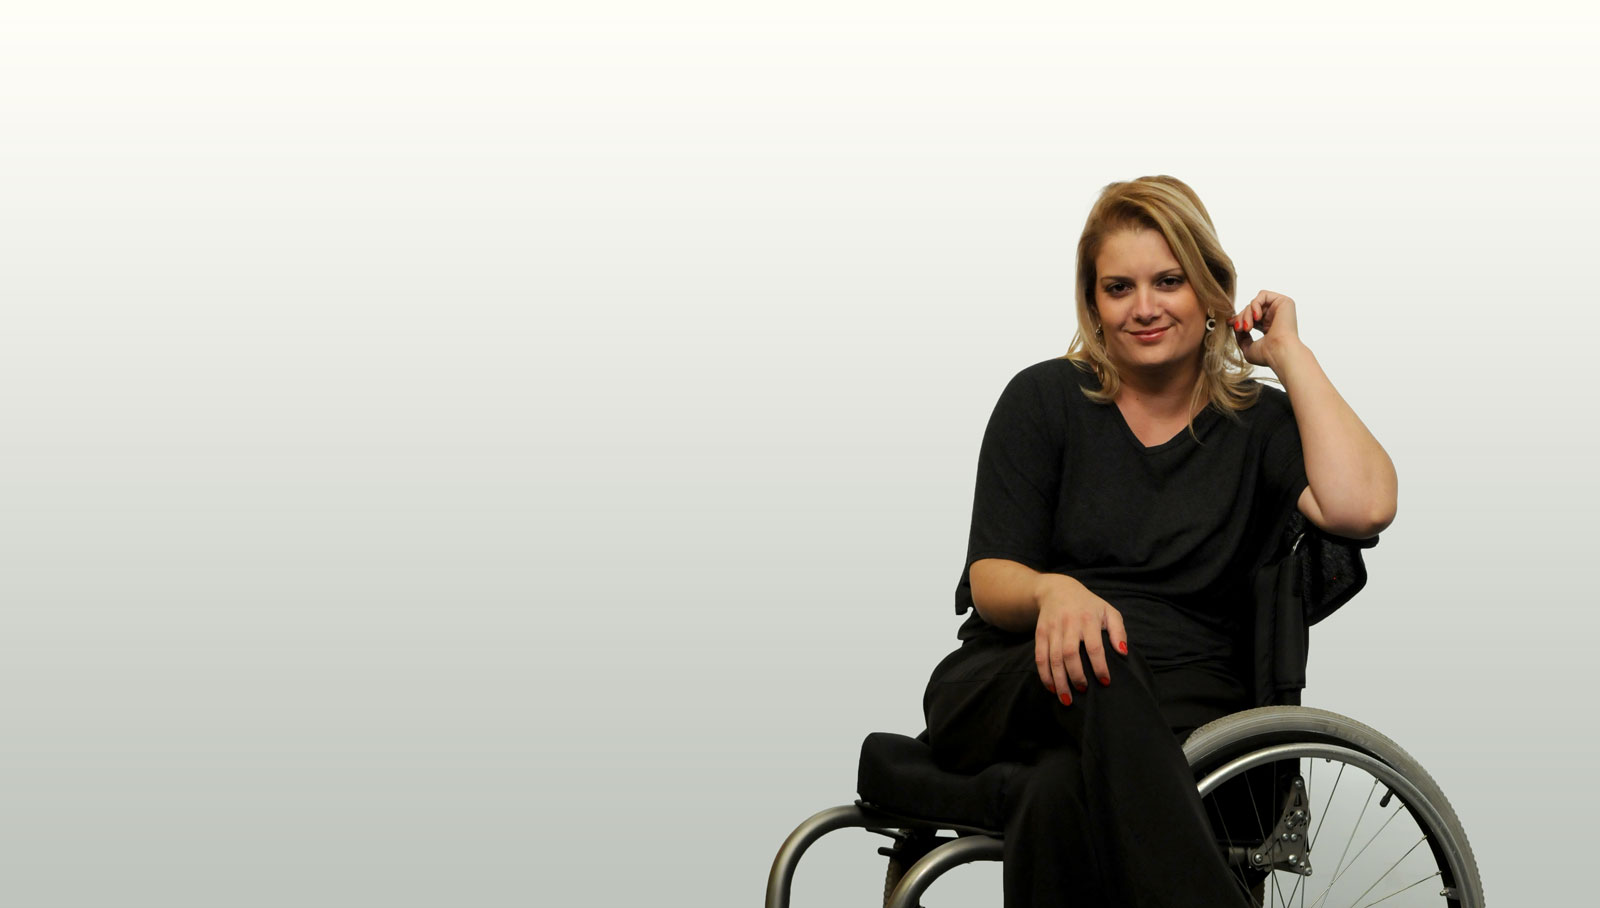 juliana in her wheelchair, she wears black and smiles